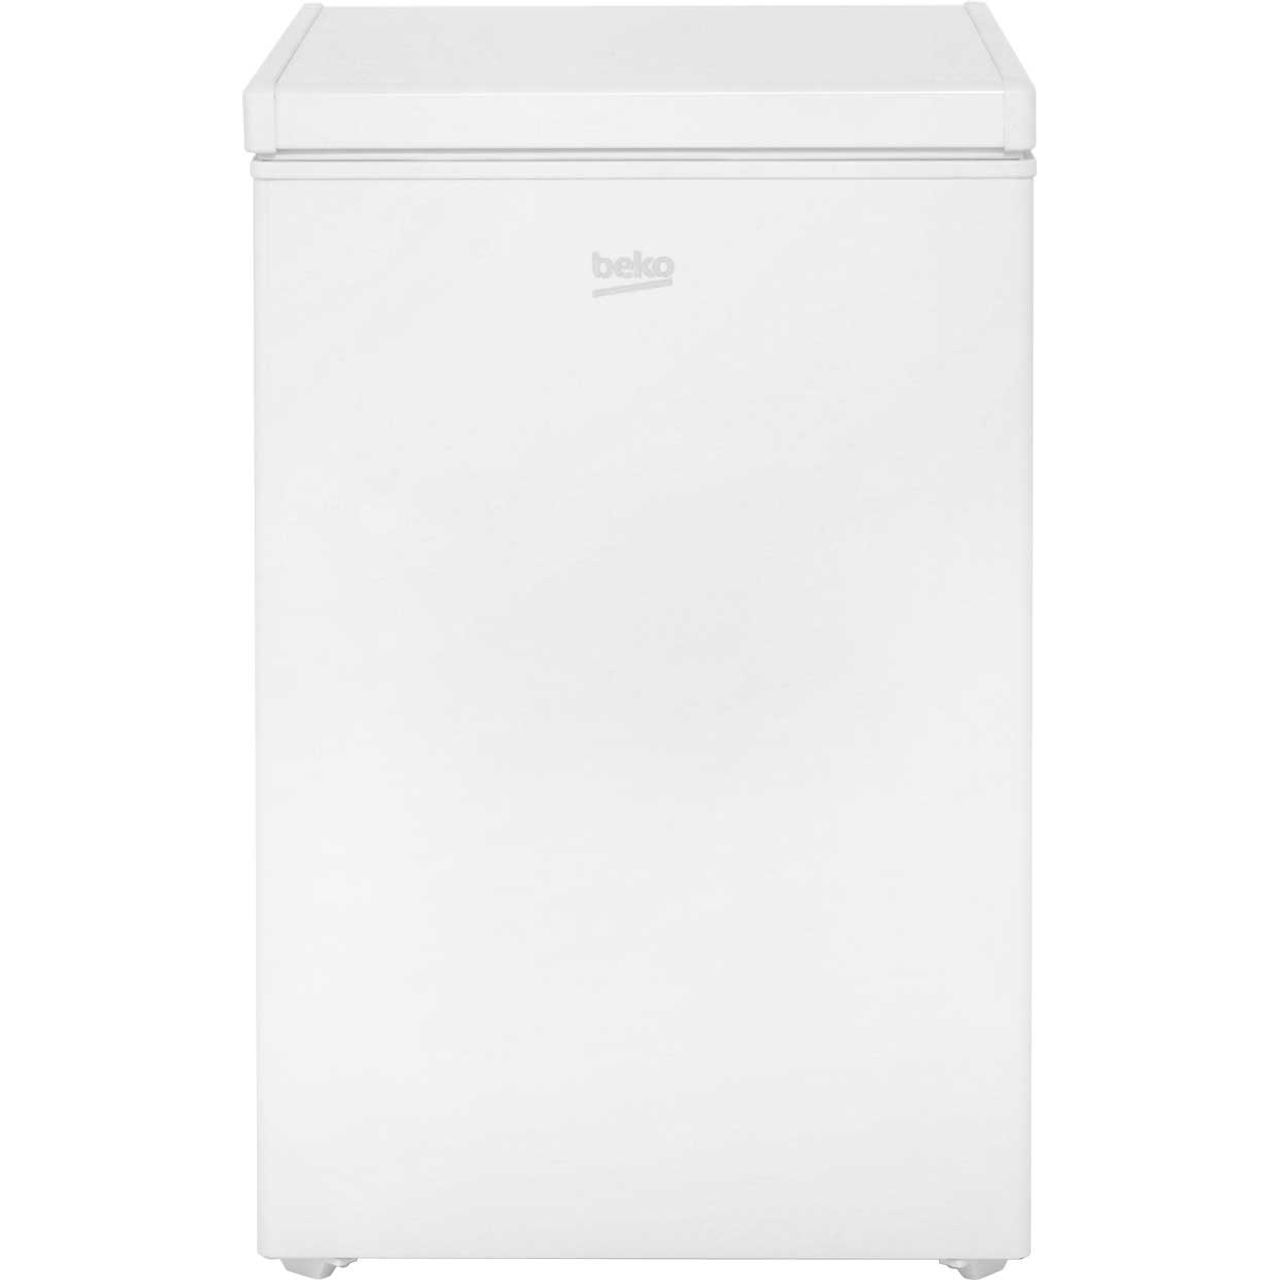 Beko CF374W Chest Freezer - White